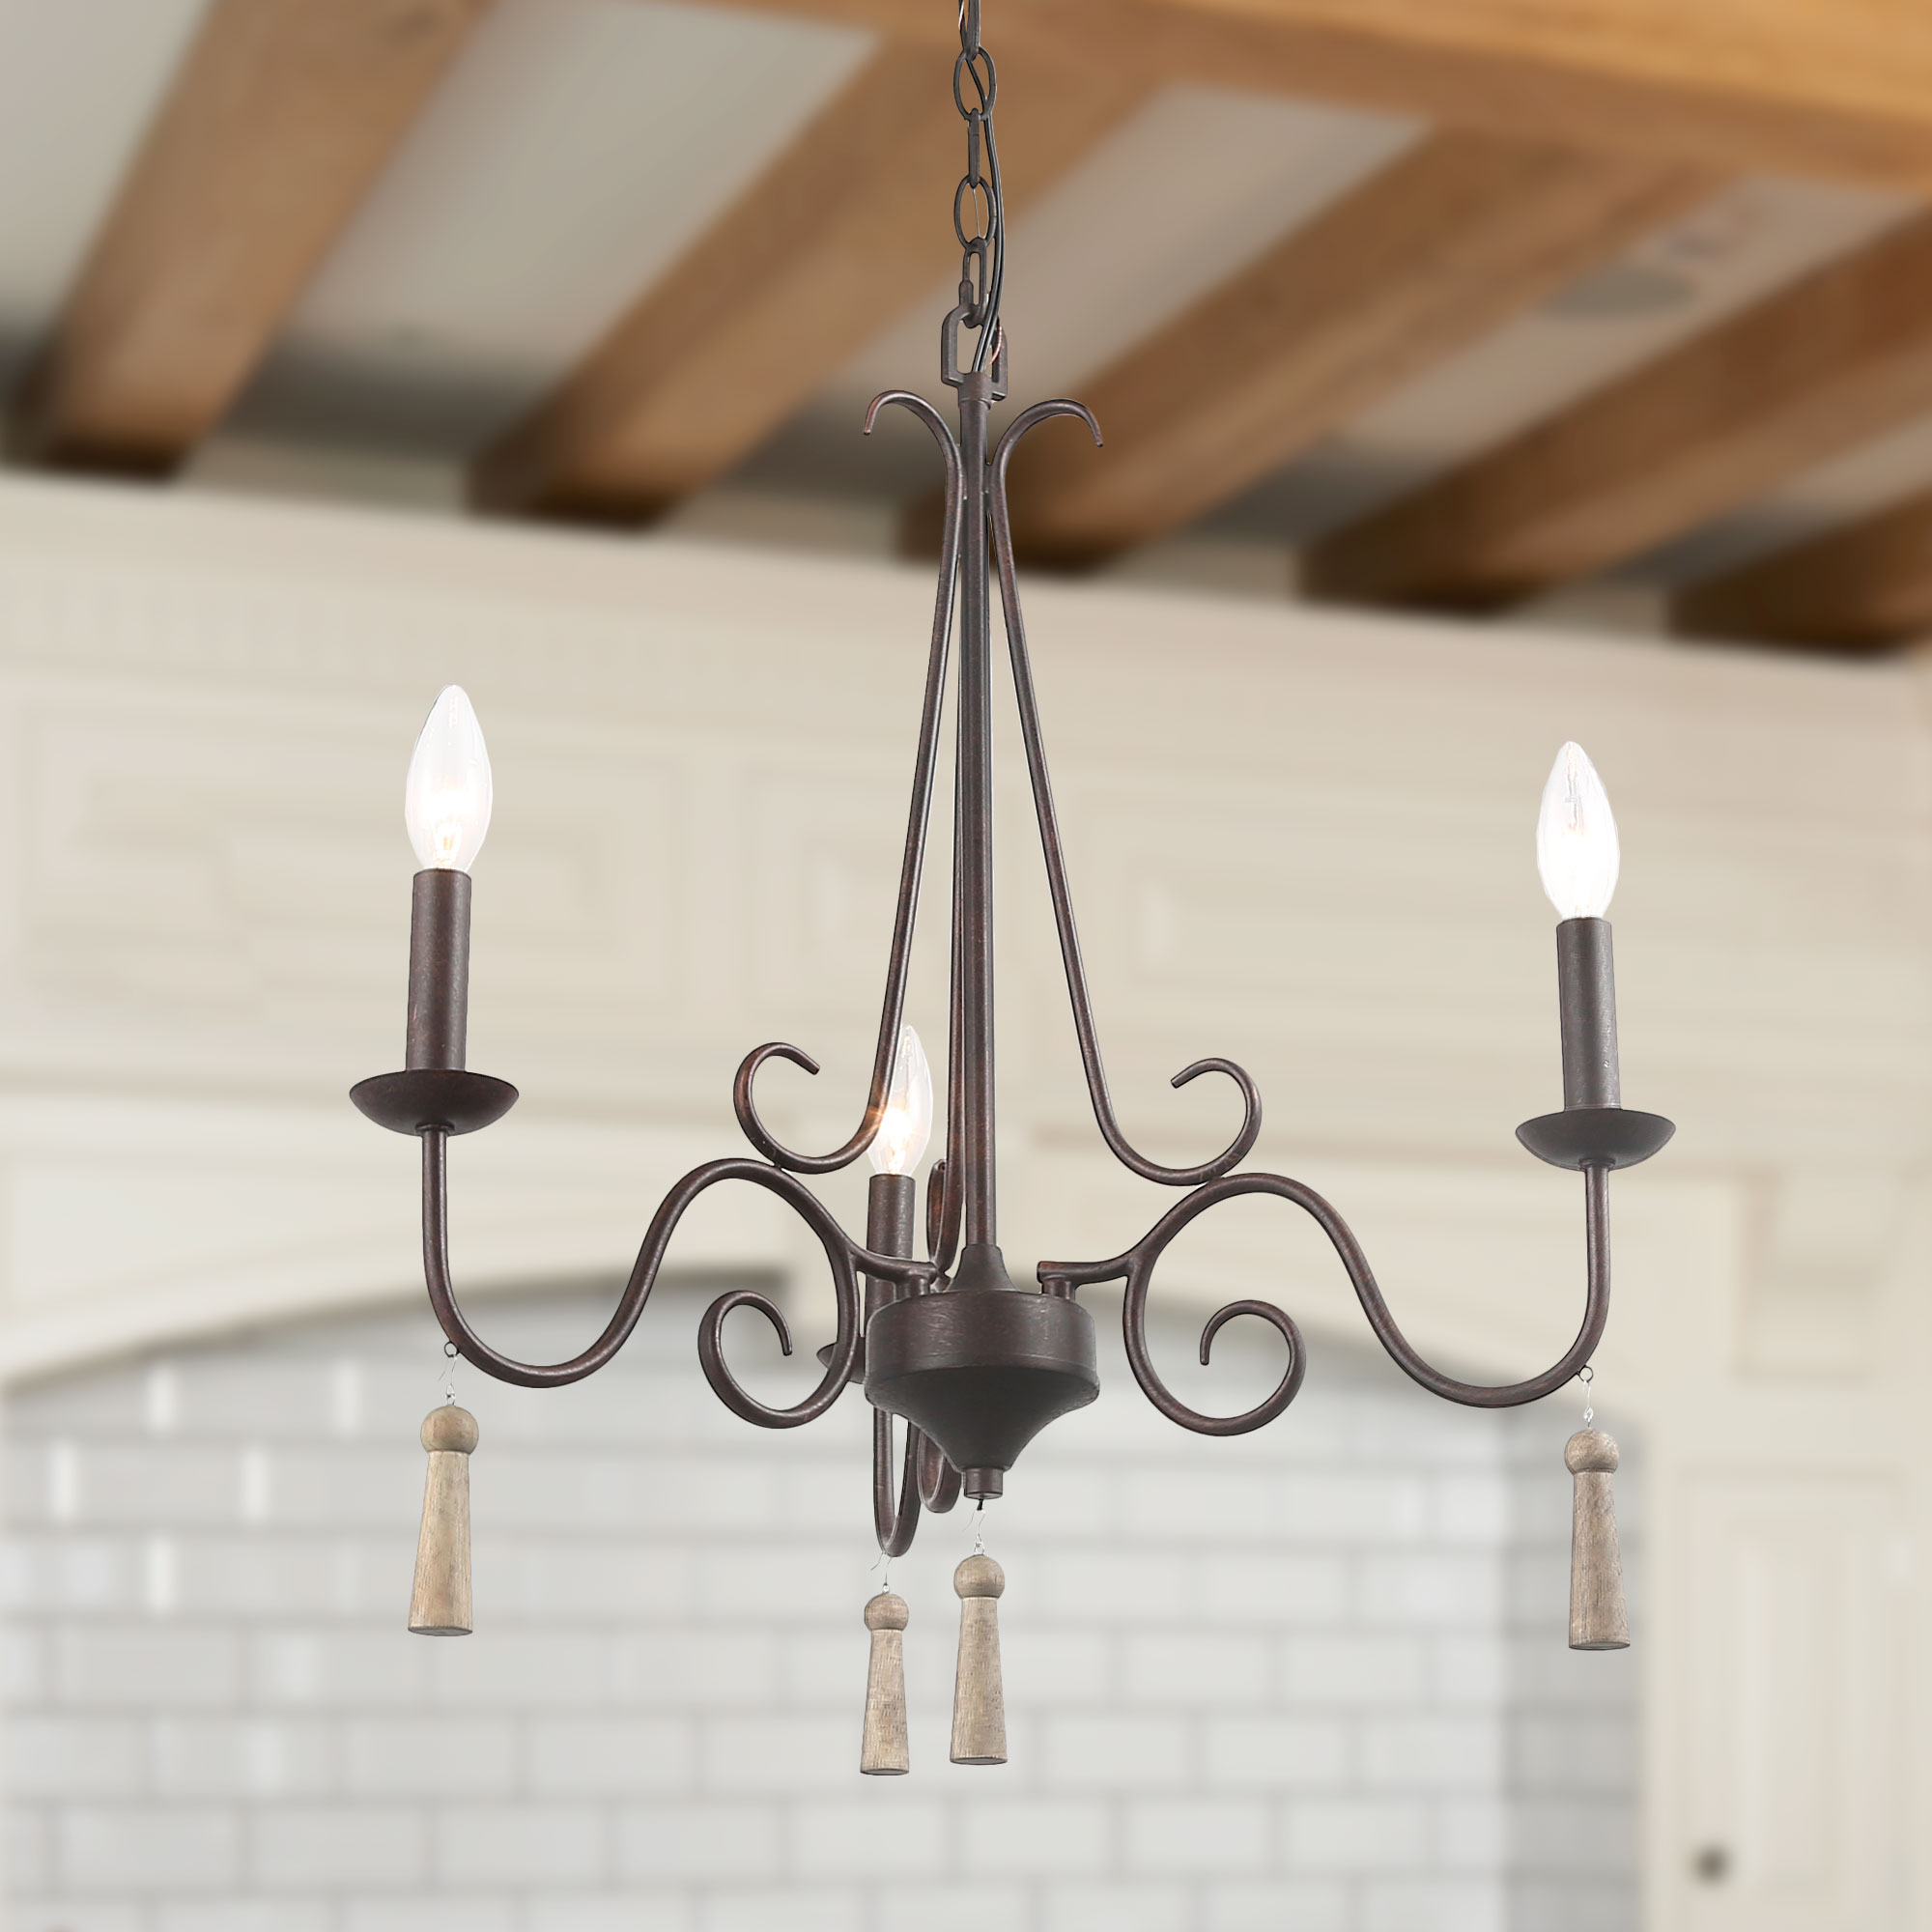 Lnc Kitchen Island Pendant Lights For Dning Room Rustic French Country Chandeliers Lights For Indoor Home Decro Transitional Chandelier 3 Lights Wood Pendant For Living Room Walmart Com Walmart Com